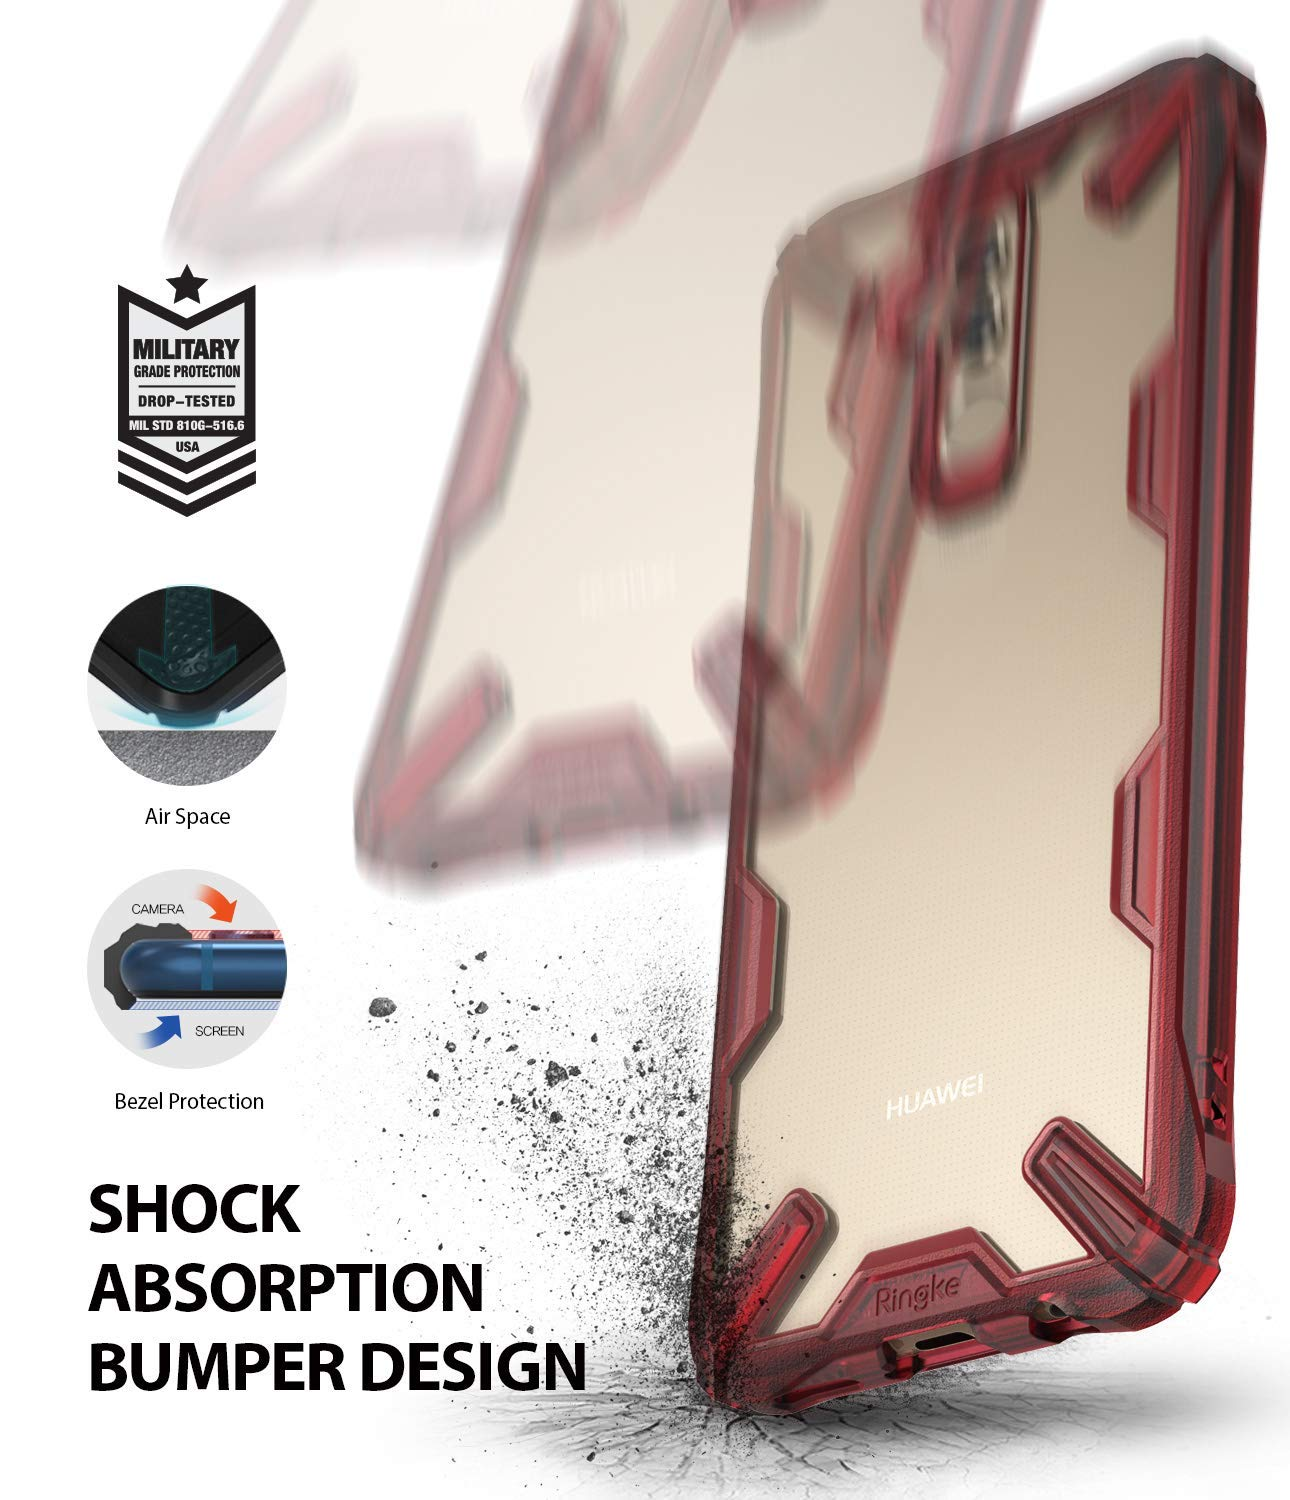 shock absorption bumper technology featuring military grade drop protection